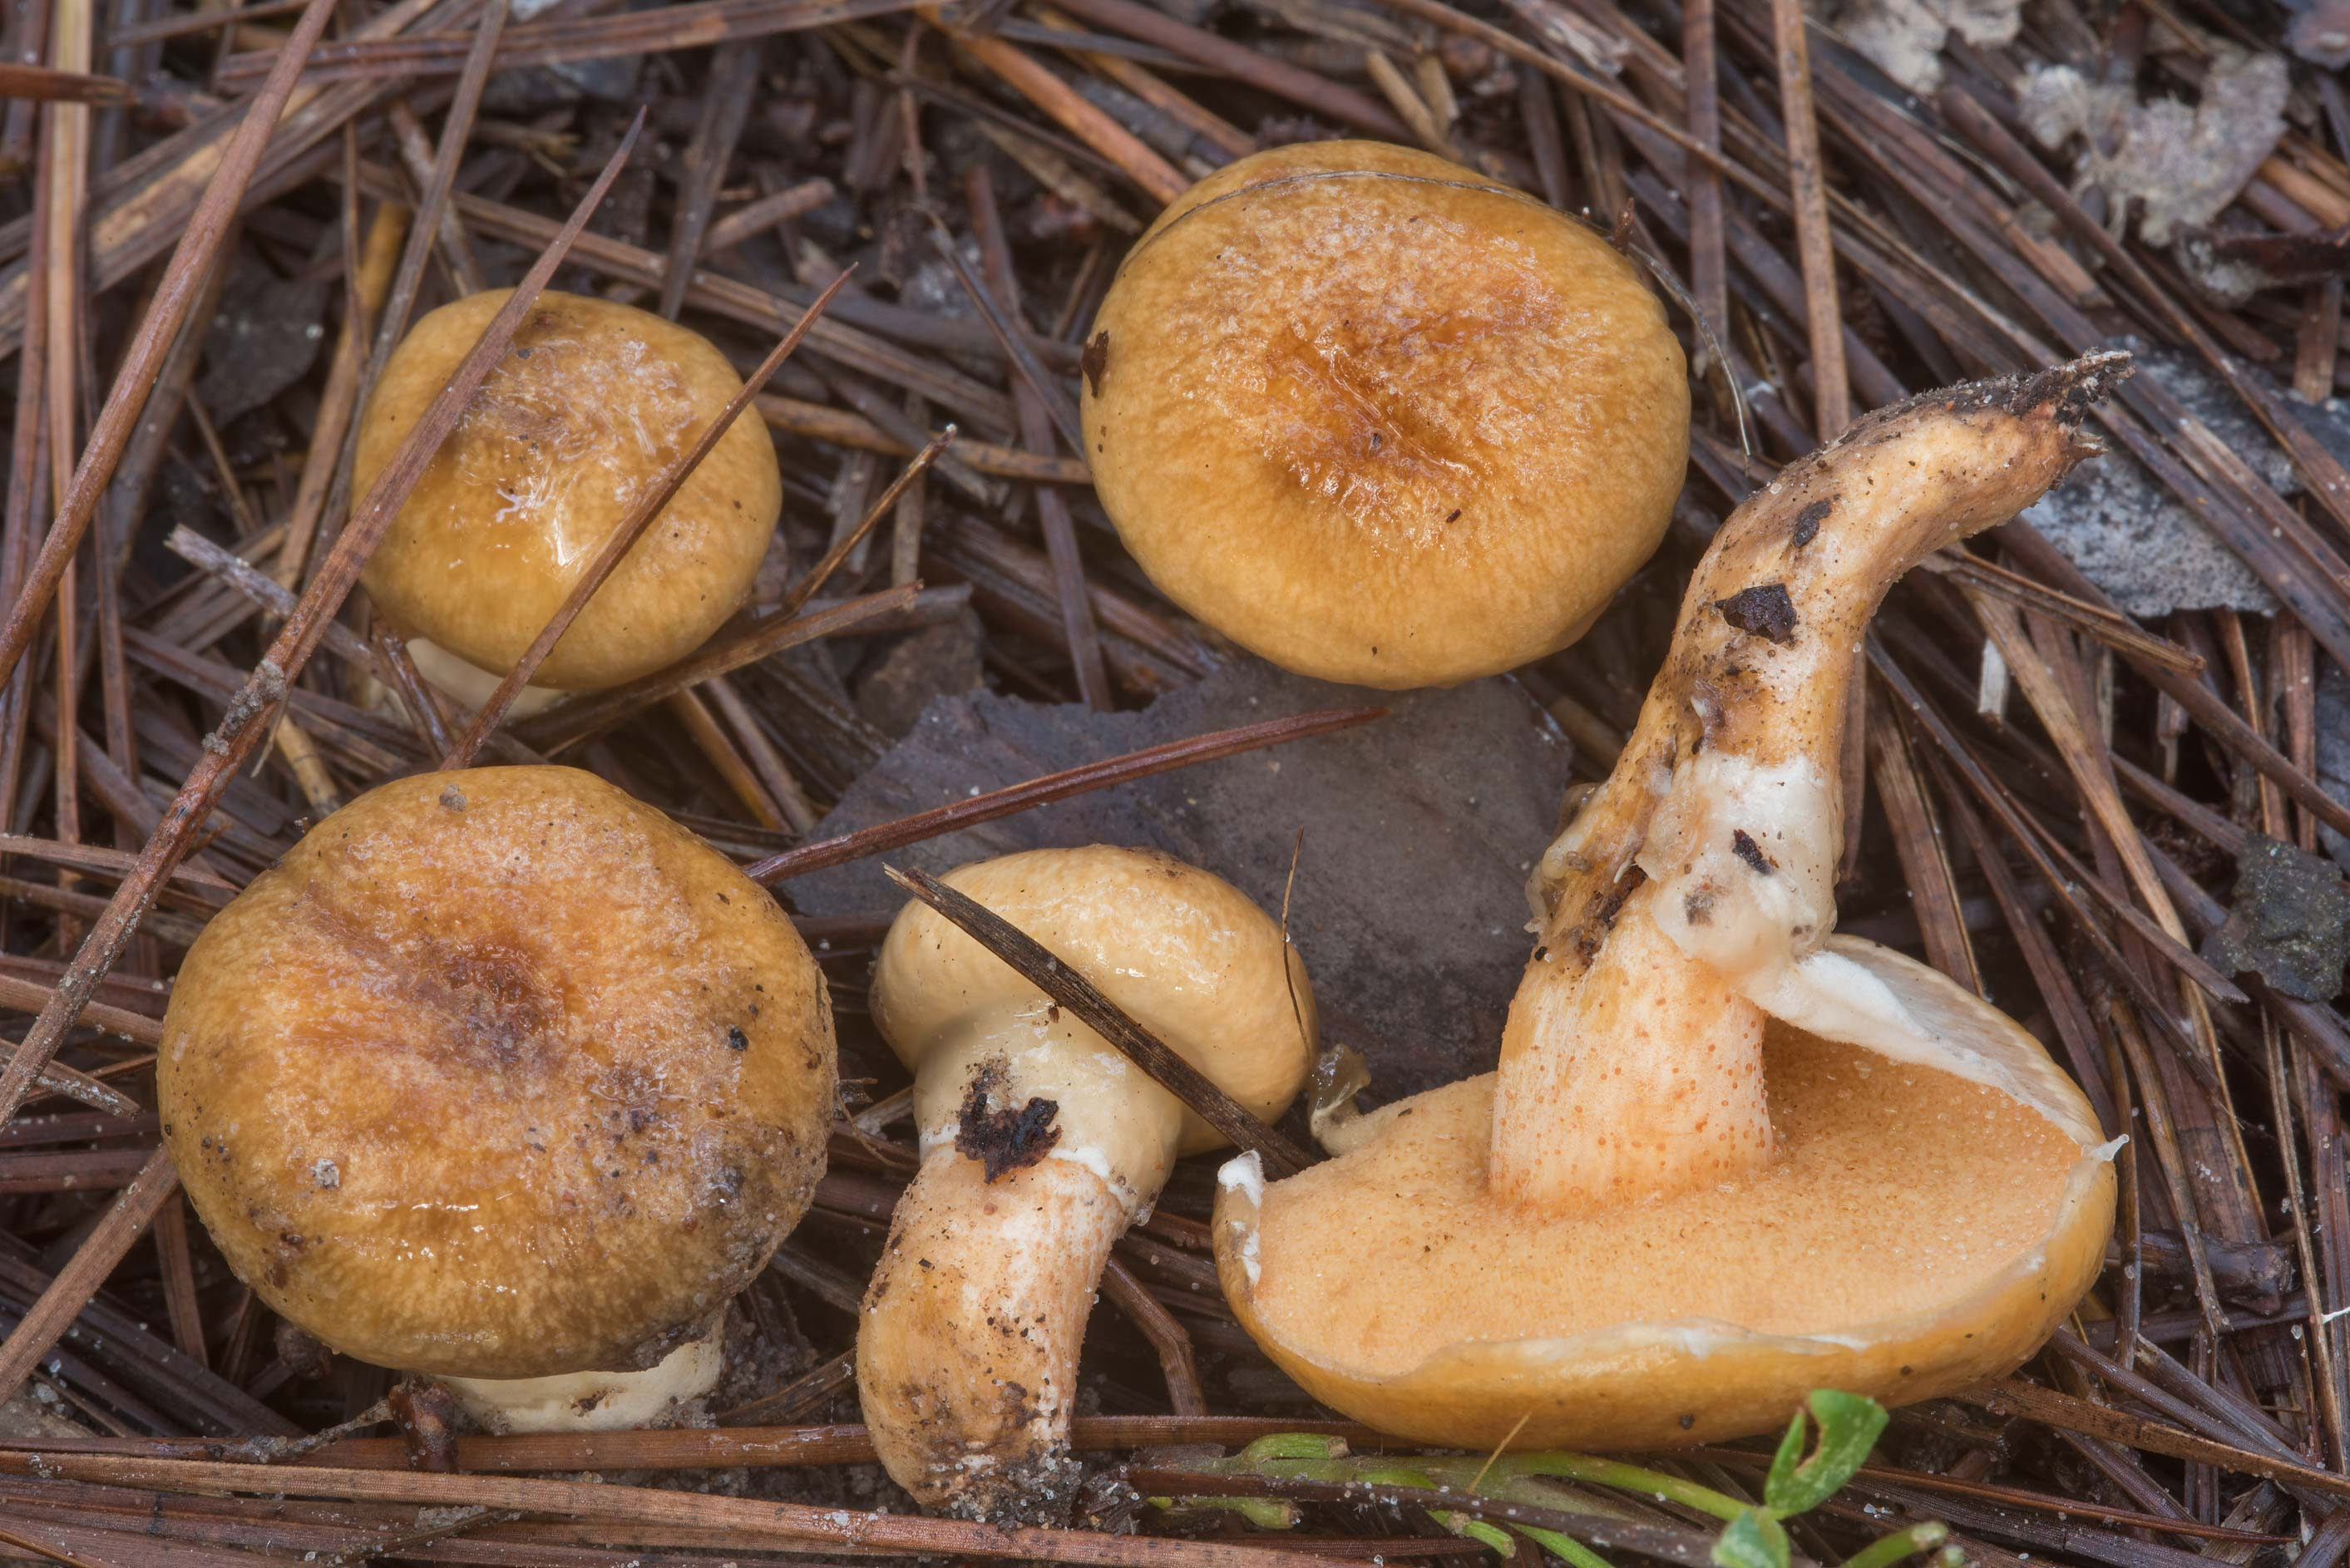 Suillus cothurnatus mushrooms in a pine forest on...National Forest. Richards, Texas